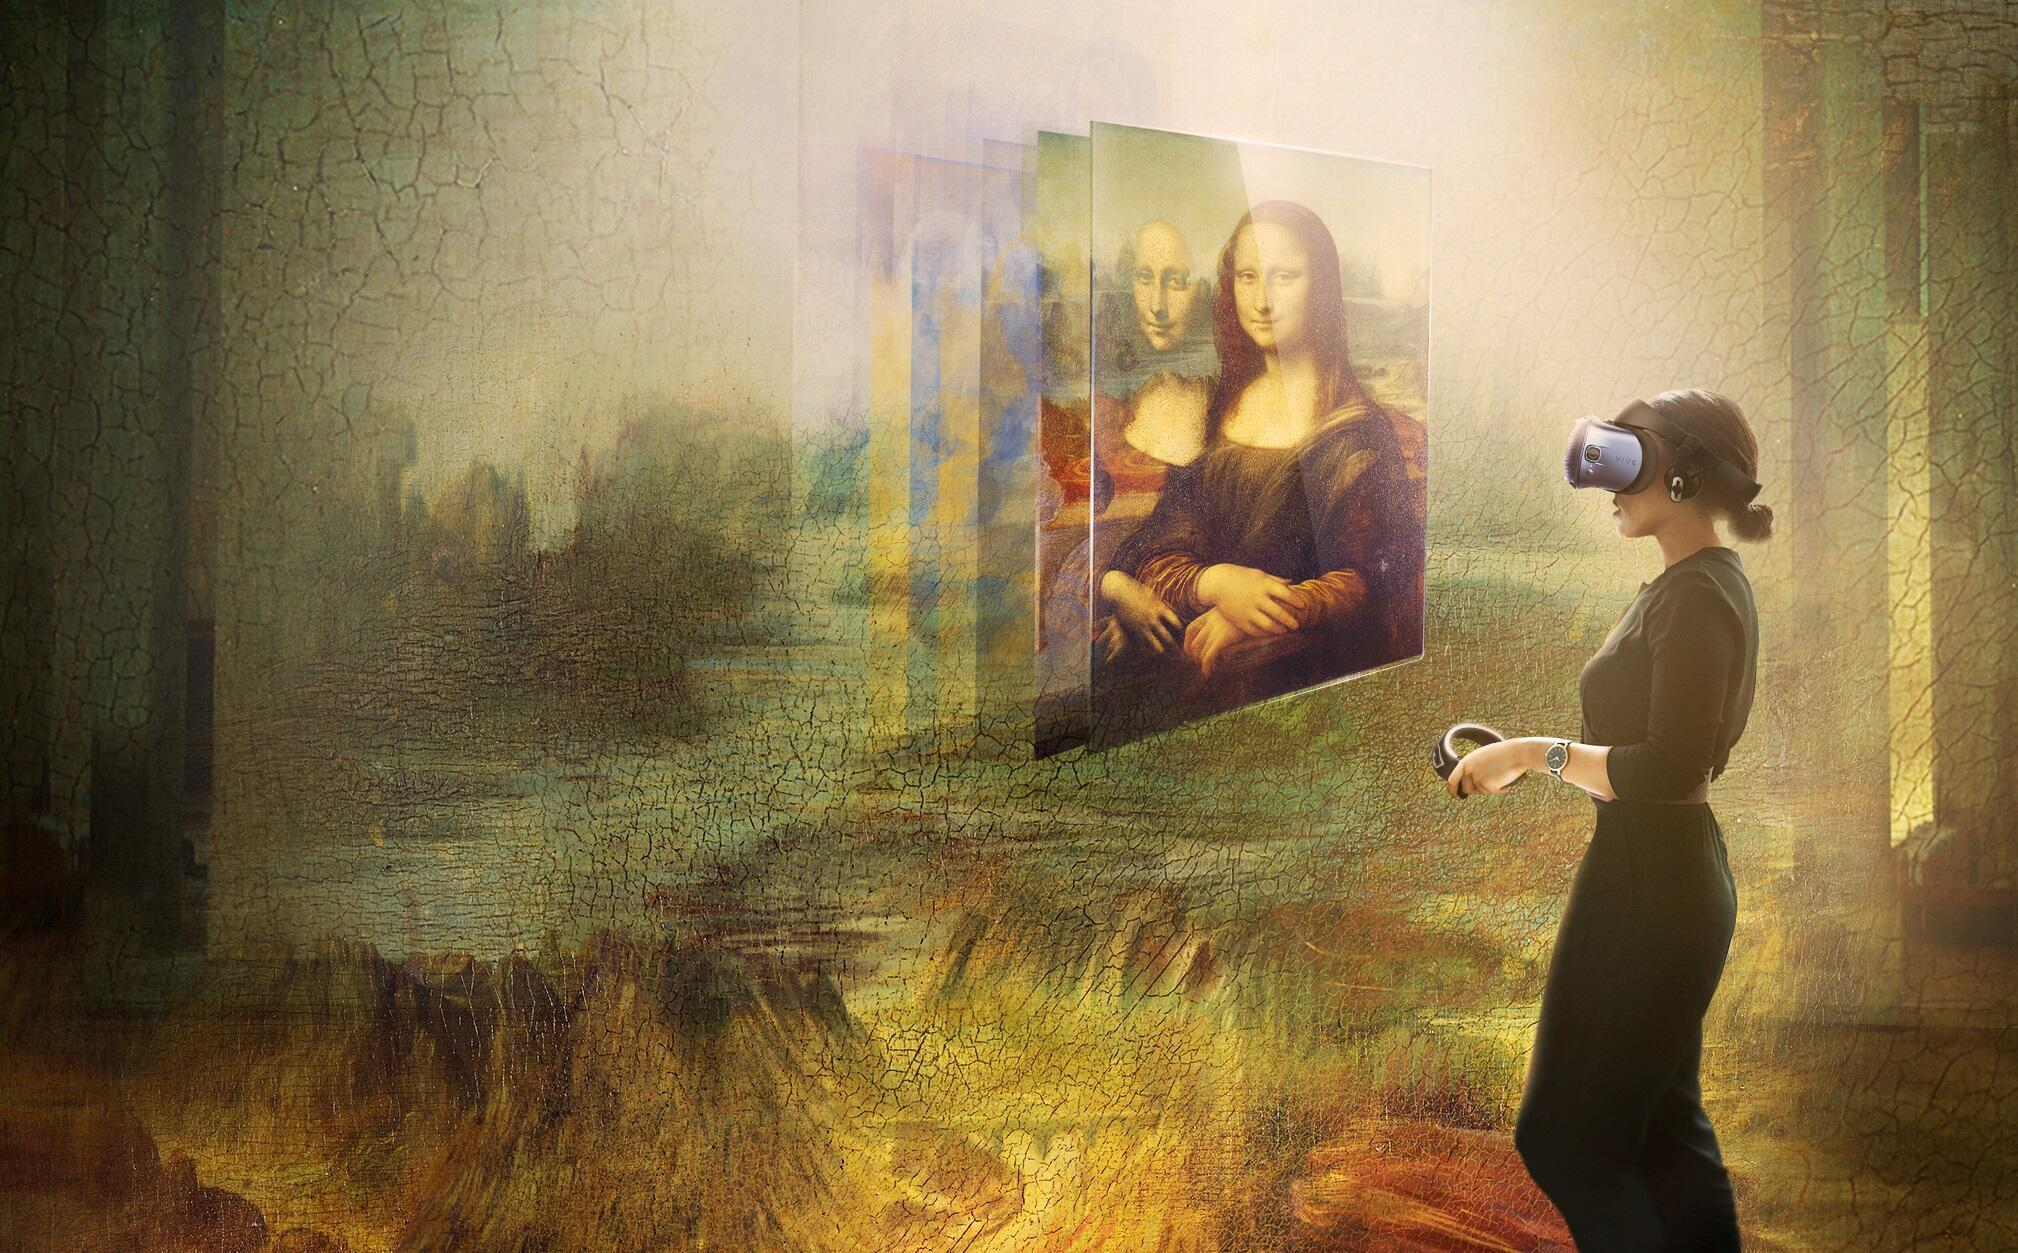 Still from Mona Lisa: Beyond the Glass. A part of the Leonardo da Vinci retrospective at the Louvre museum in Paris that closed in January 2020, breaking the Louvre's all-time attendance record.